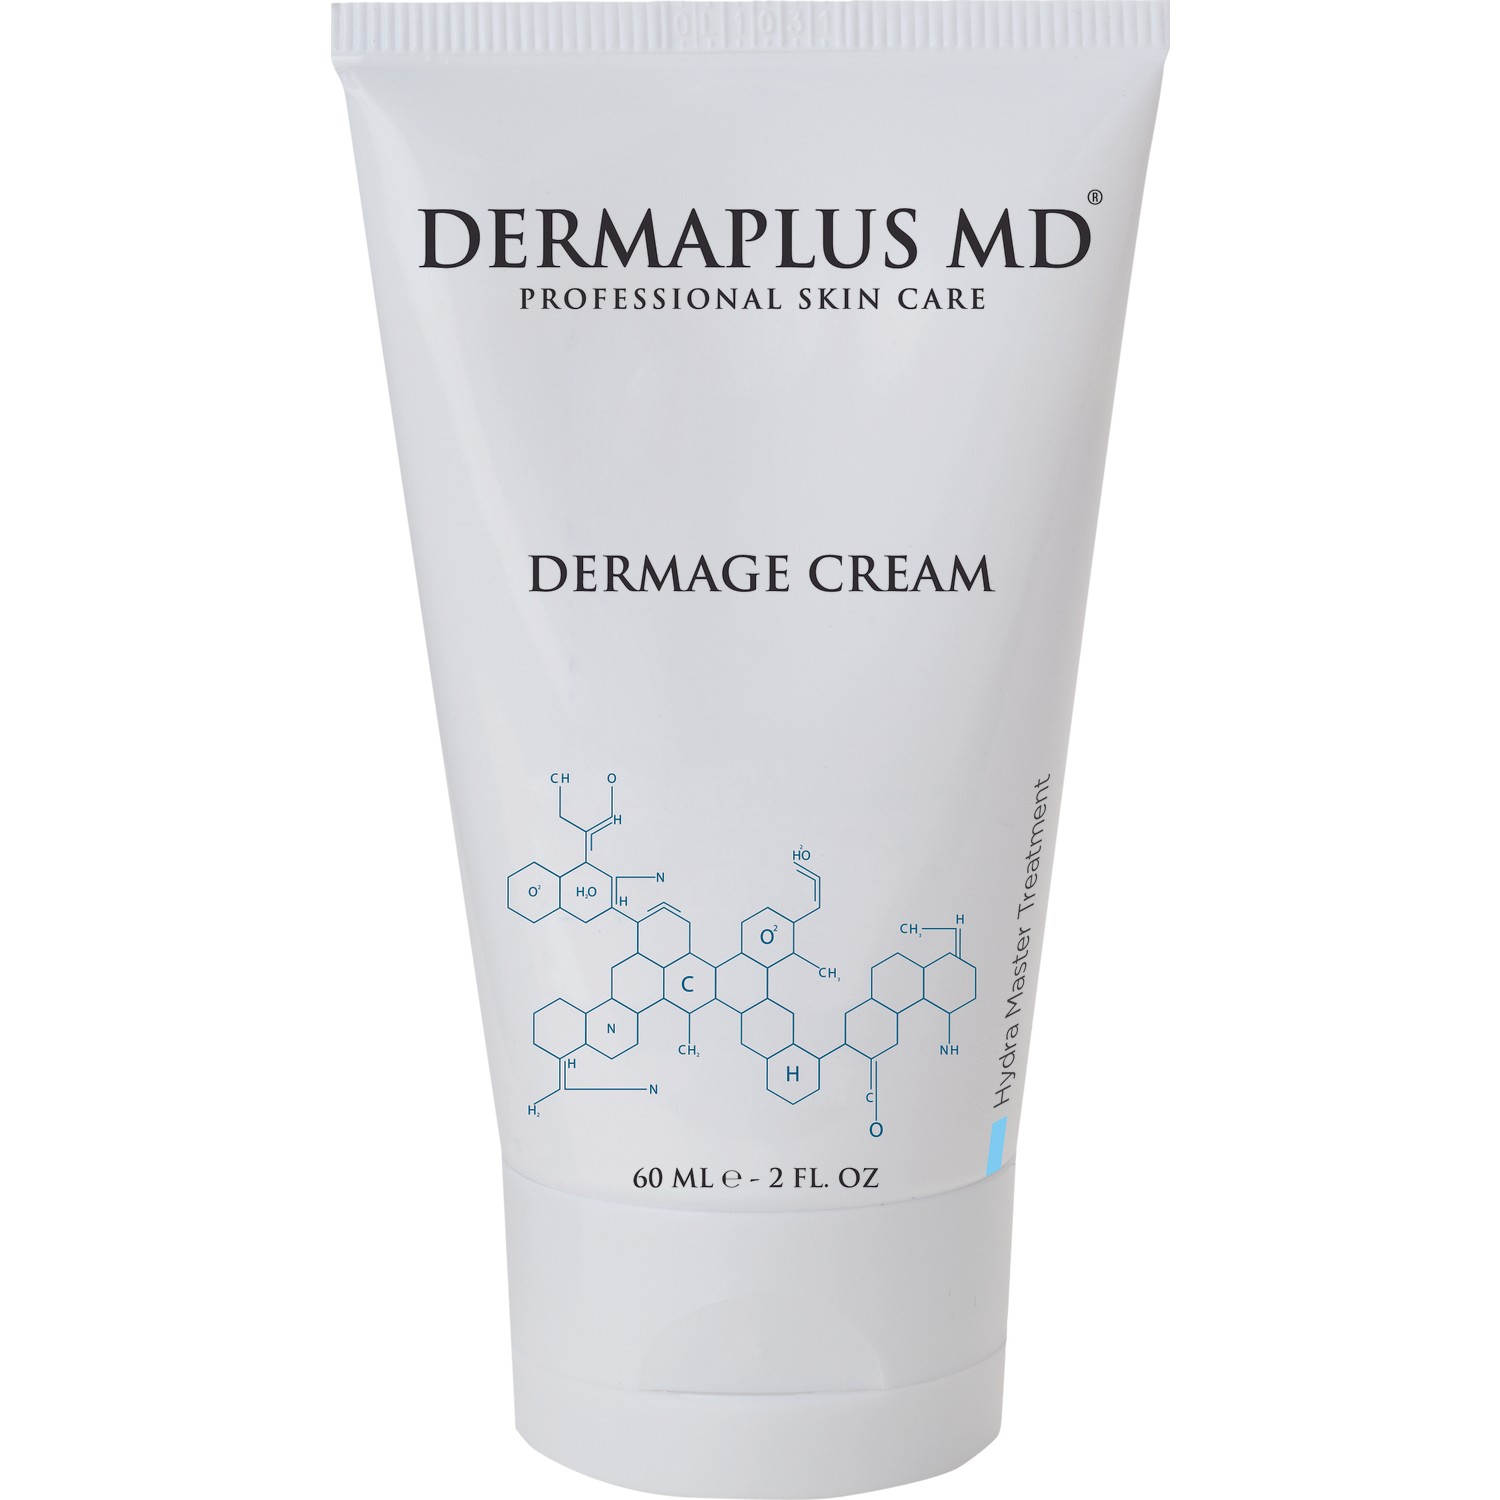 dermaplus The best antioxidants that will give you fairer, lovely & beautiful skin powerful antioxidant in the form of glutathione when combined with other antioxidants effectively fight free radicals that cause early cell damage and pre mature aging of skin and other body organs.